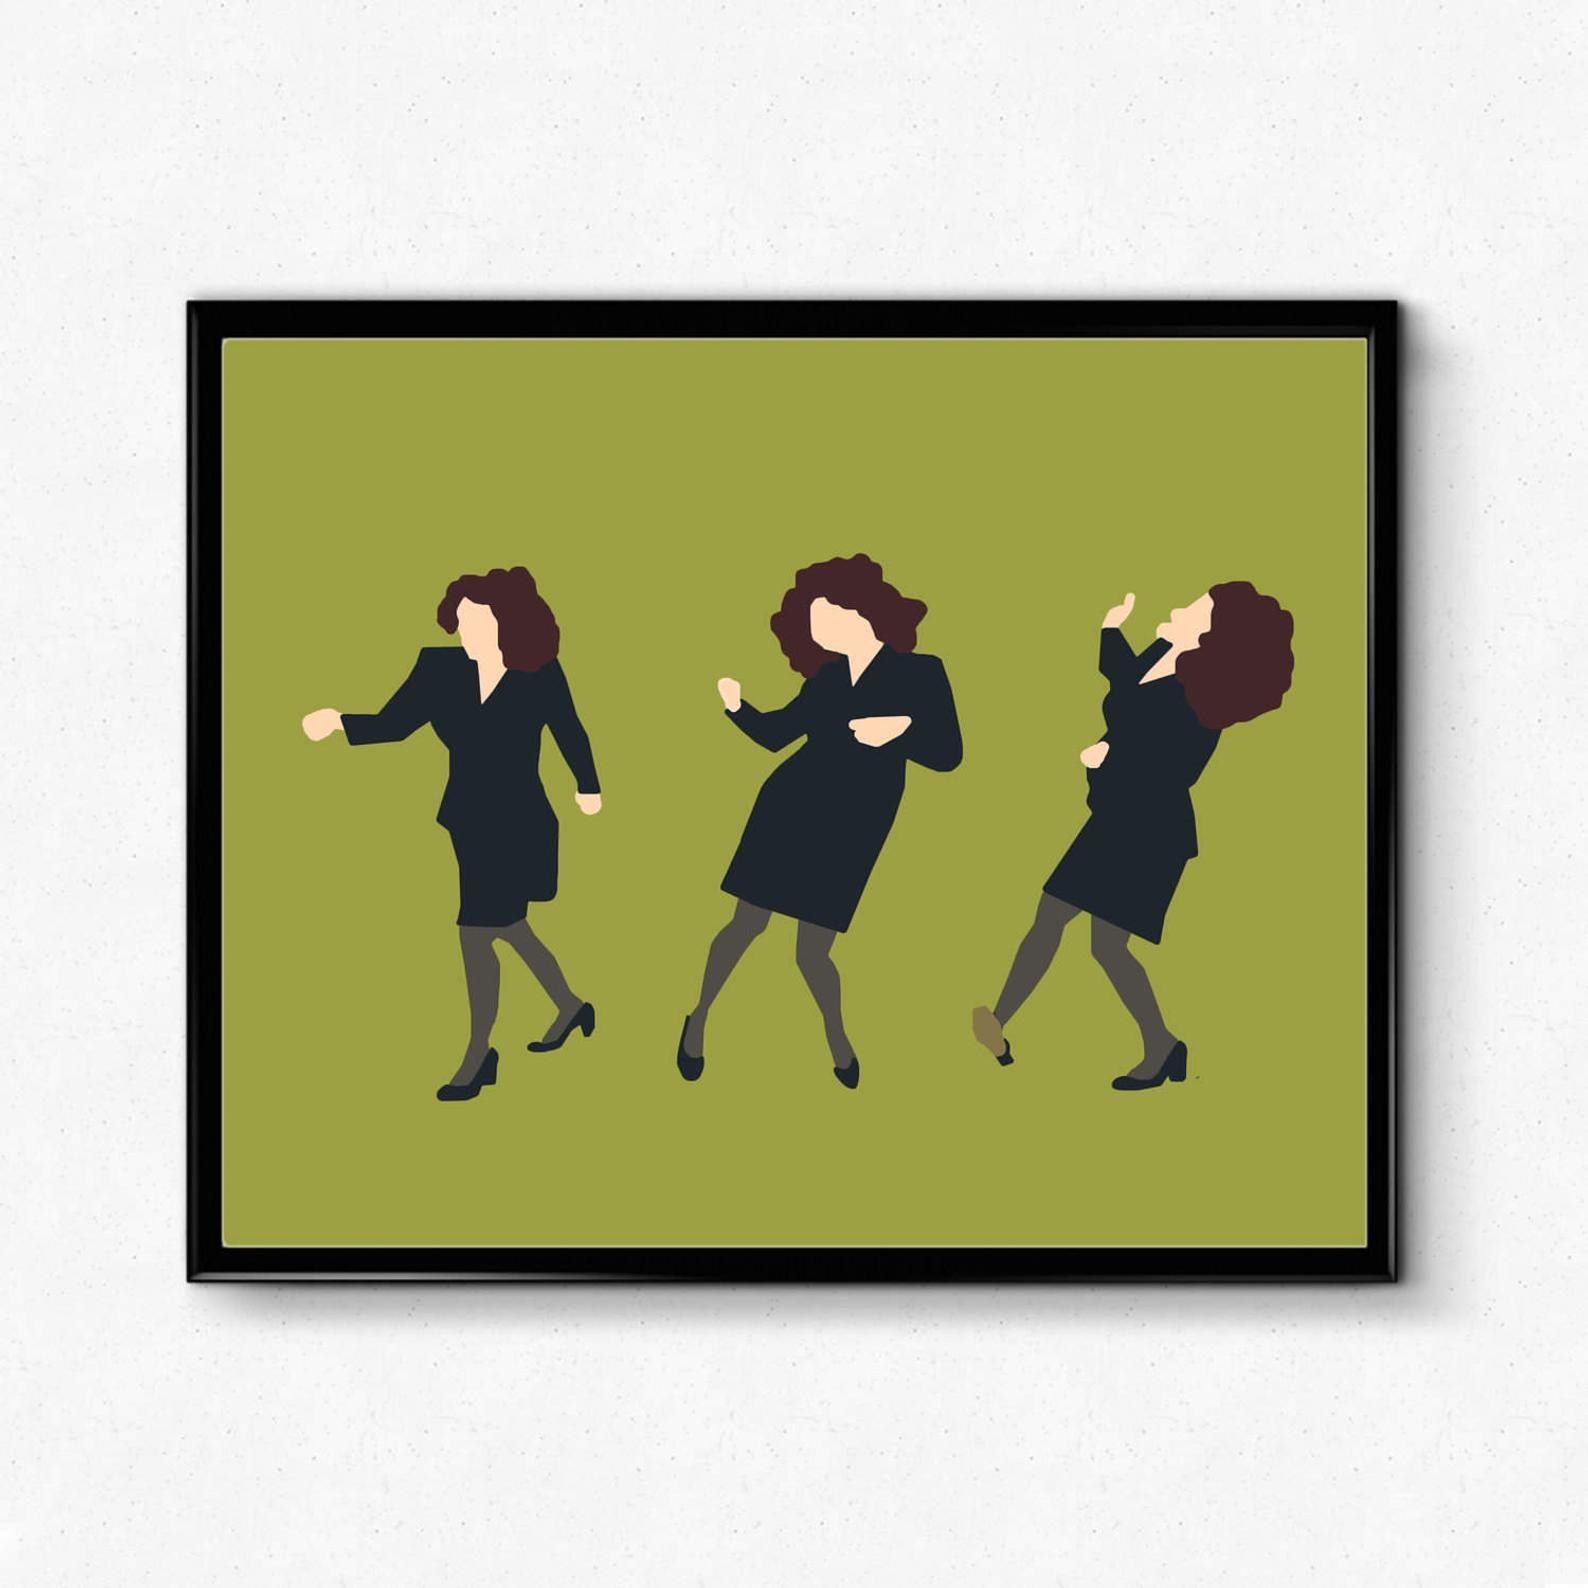 The poster with three illustrations of Elaine dancing on a green background